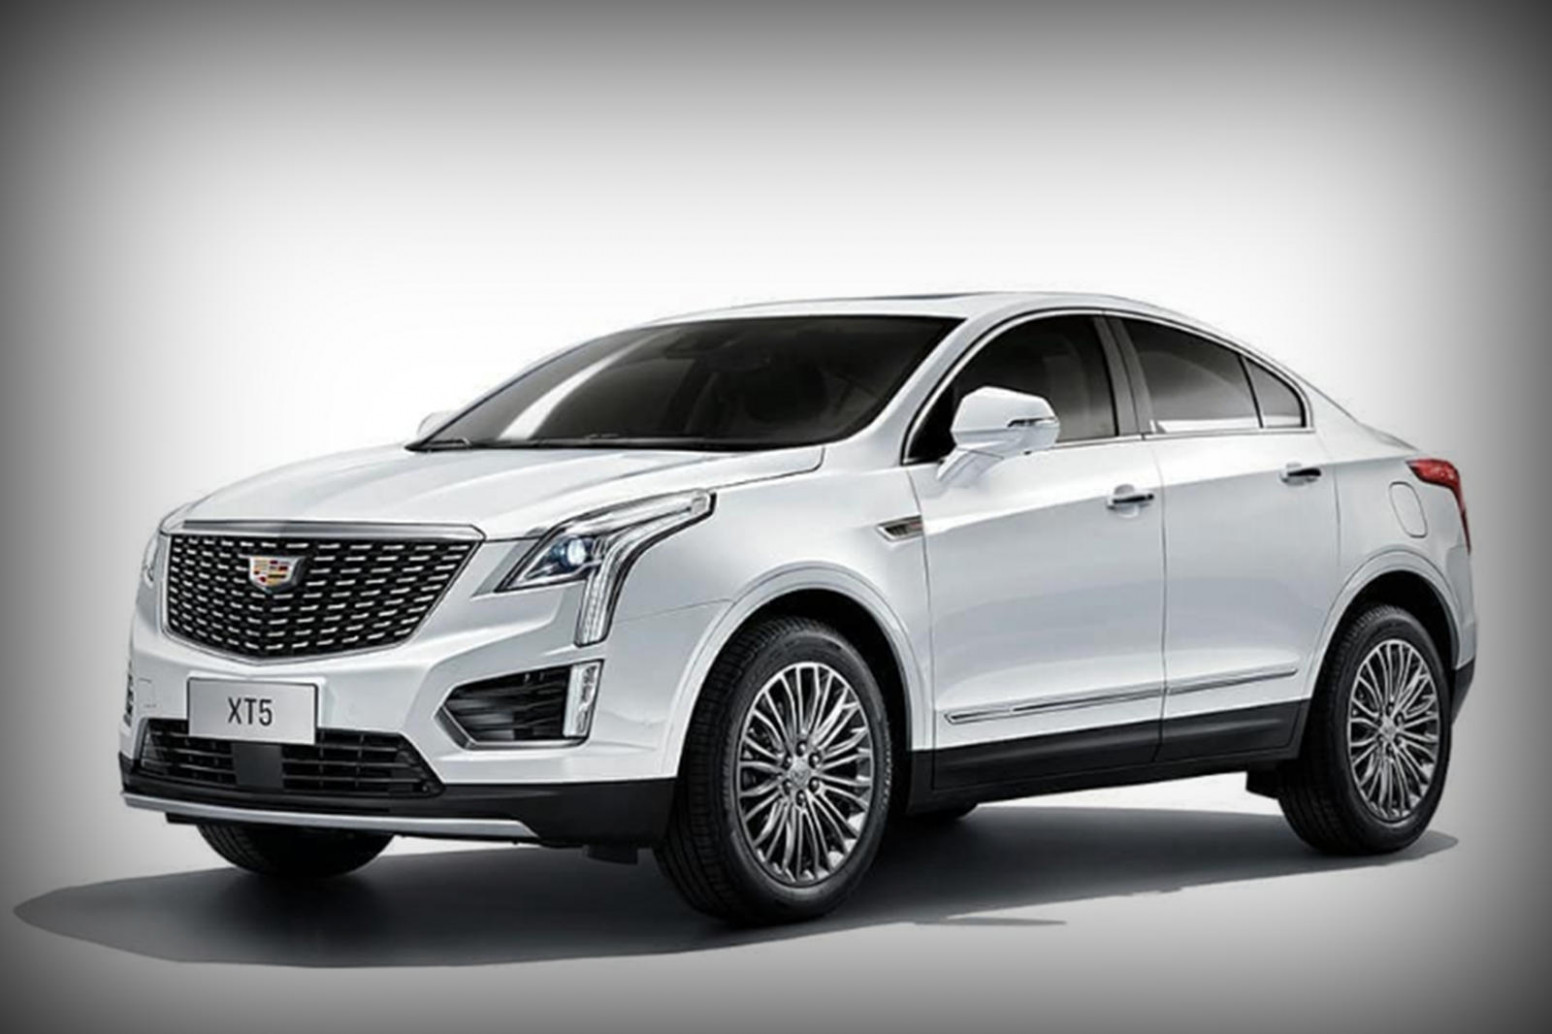 New Concept Cadillac Coupe 2022